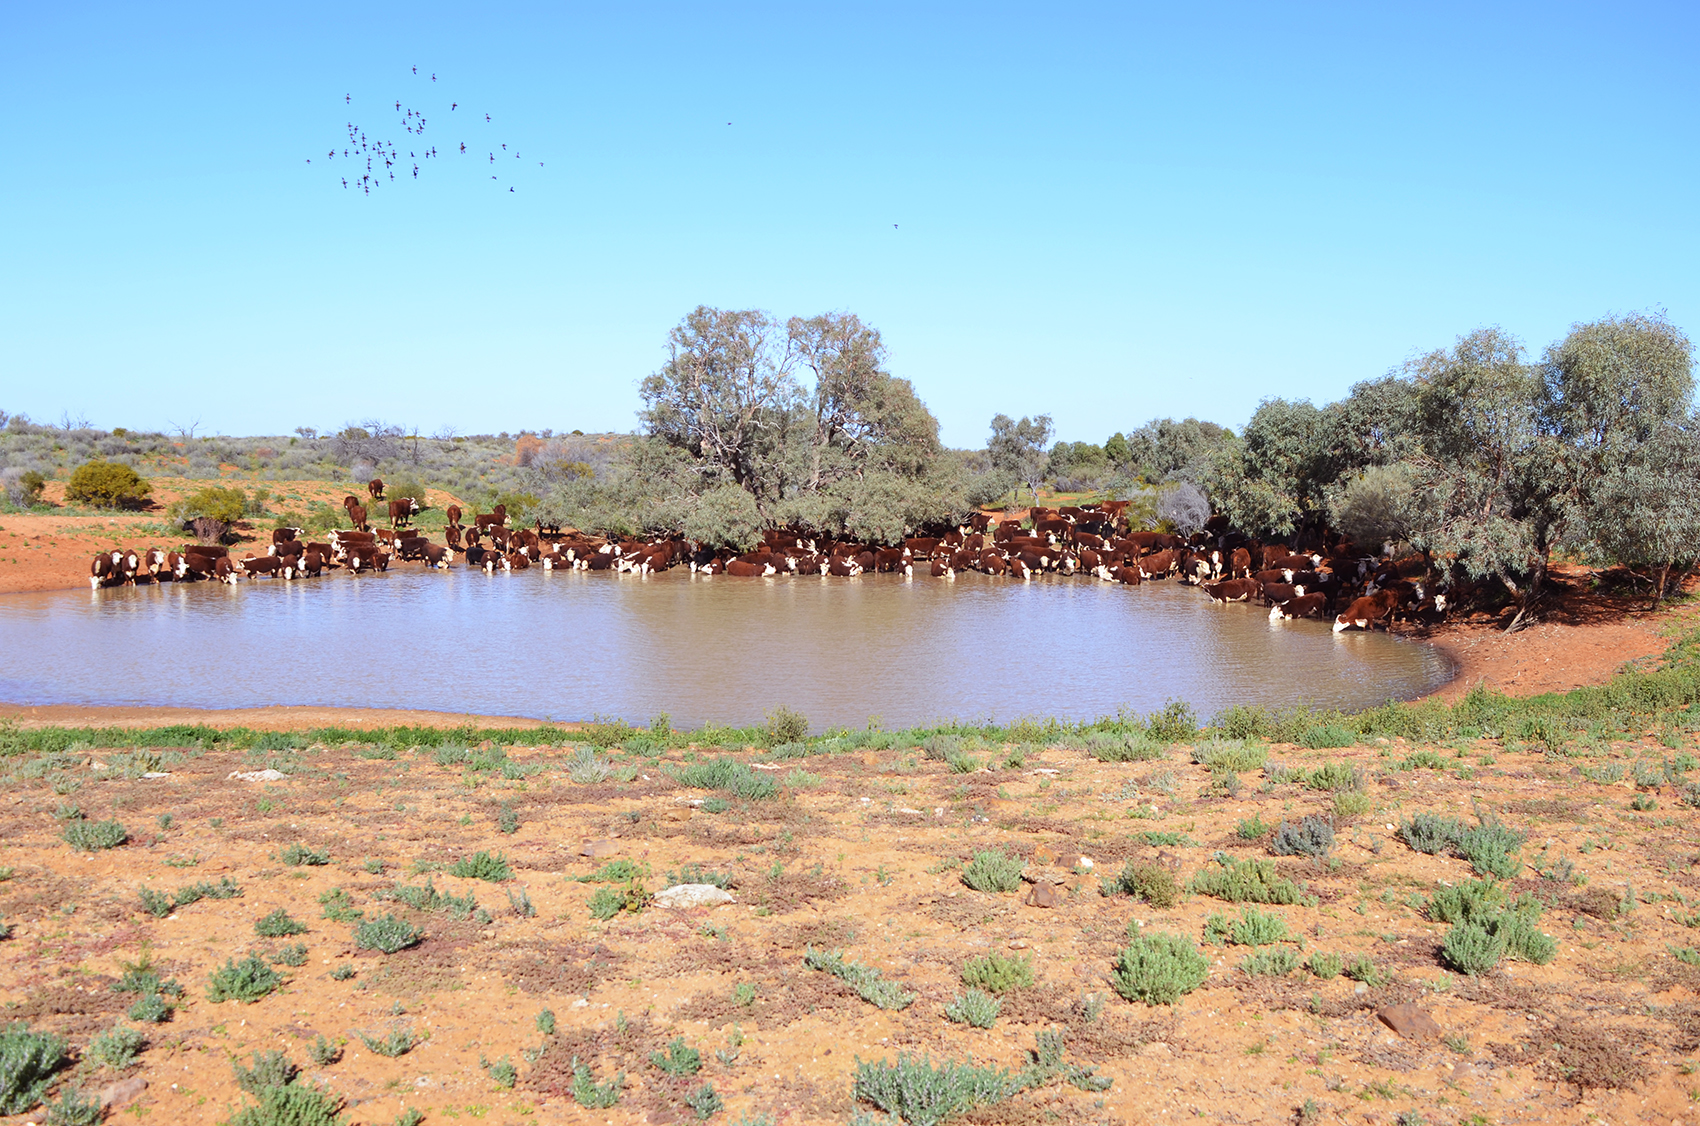 Cattle drinking at Renae's Bank, Nilpinna